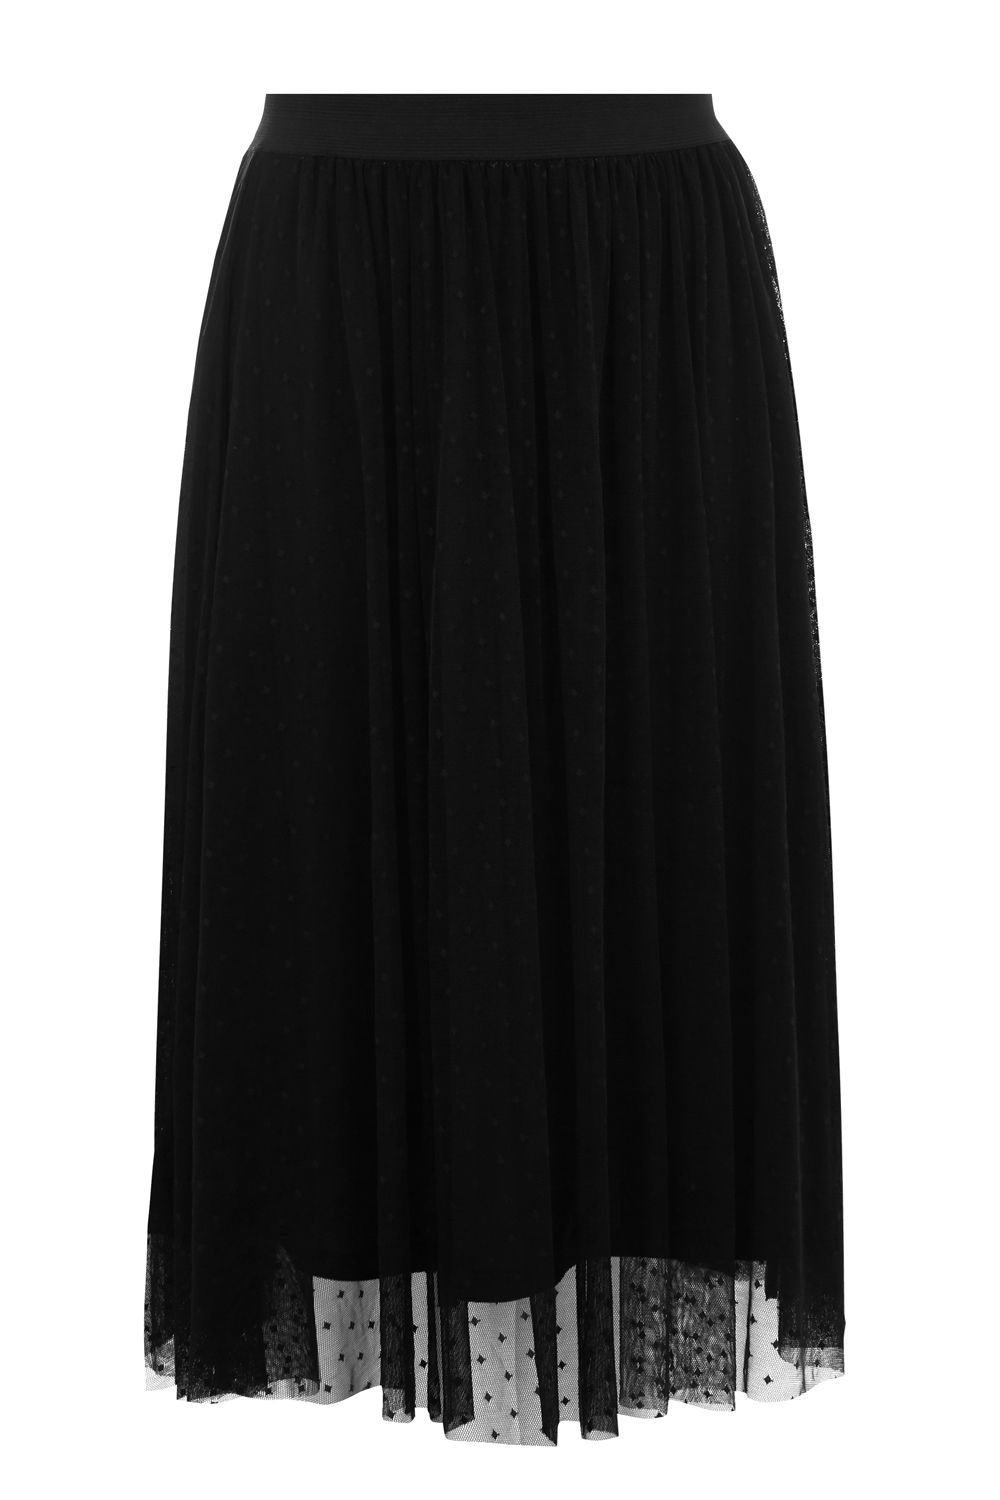 Oasis Spot Mesh Gathered Skirt, Black